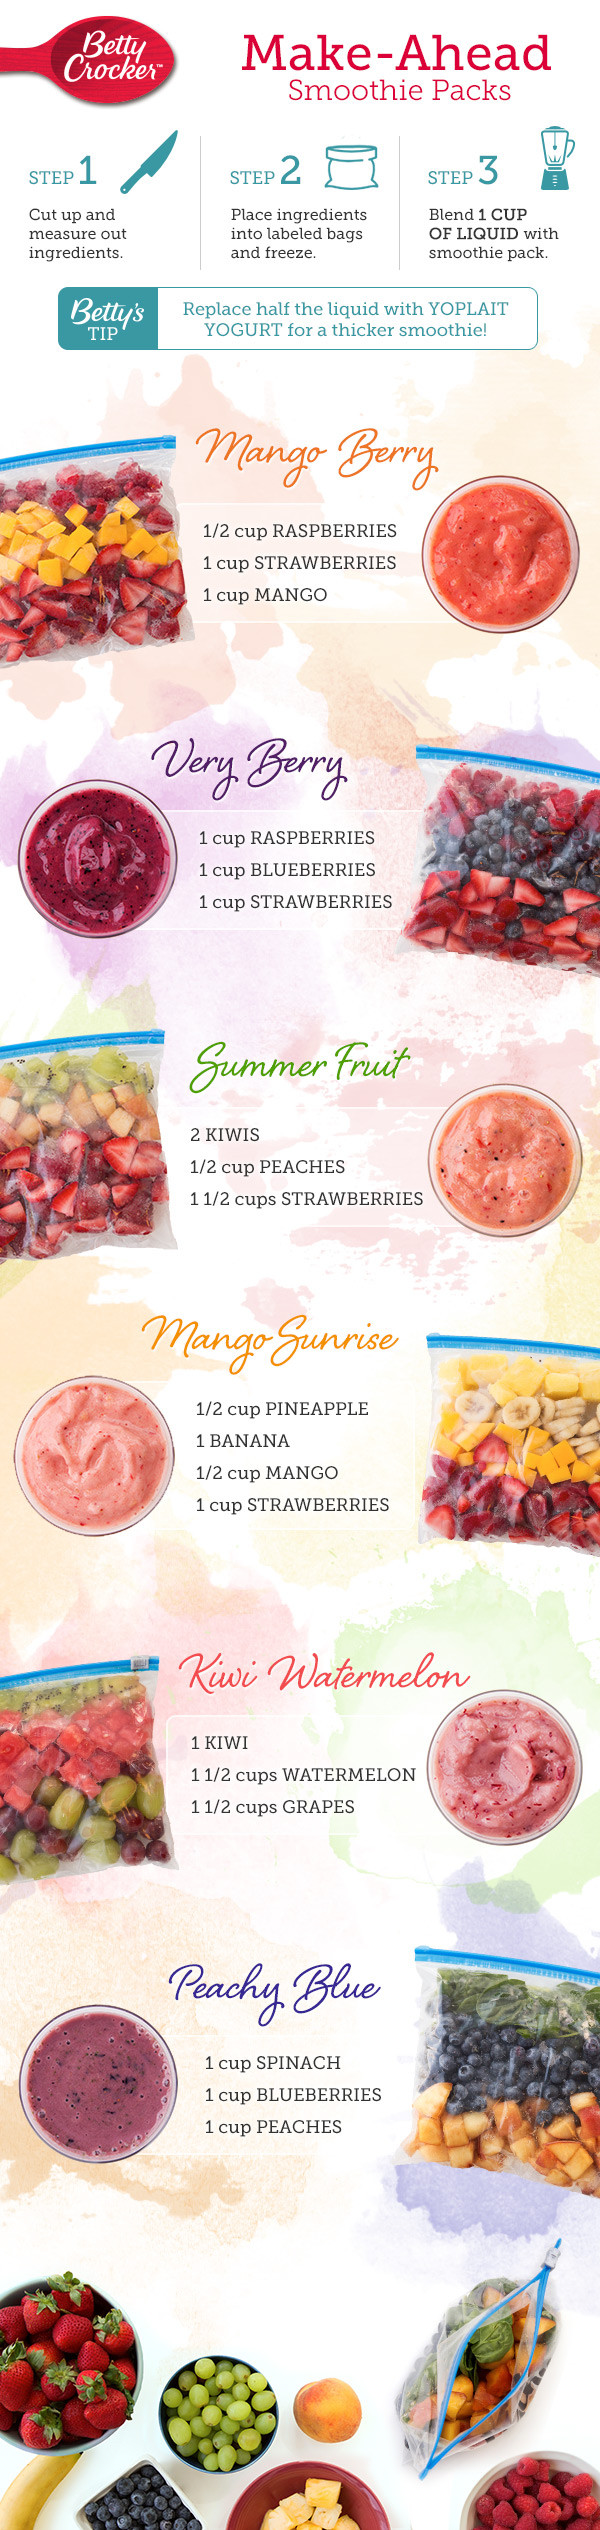 Make-Ahead Smoothie Packs